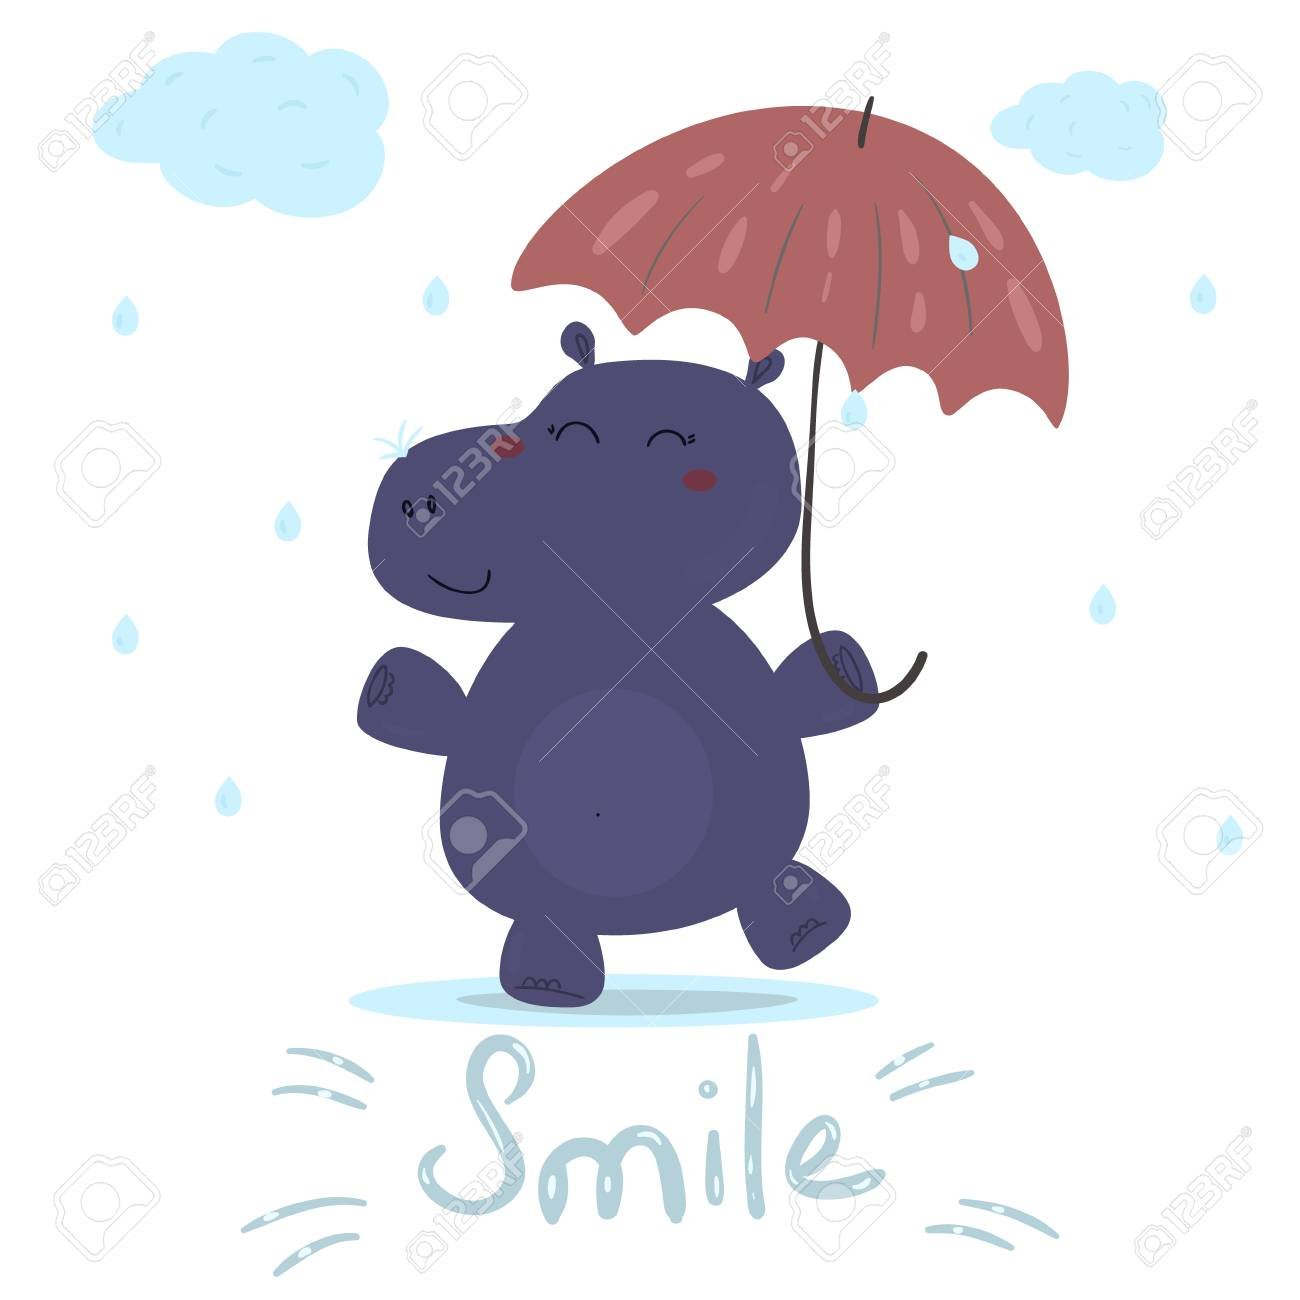 Cheerful Hippo In The Rain With An Umbrella Printable Templates Stock Vector